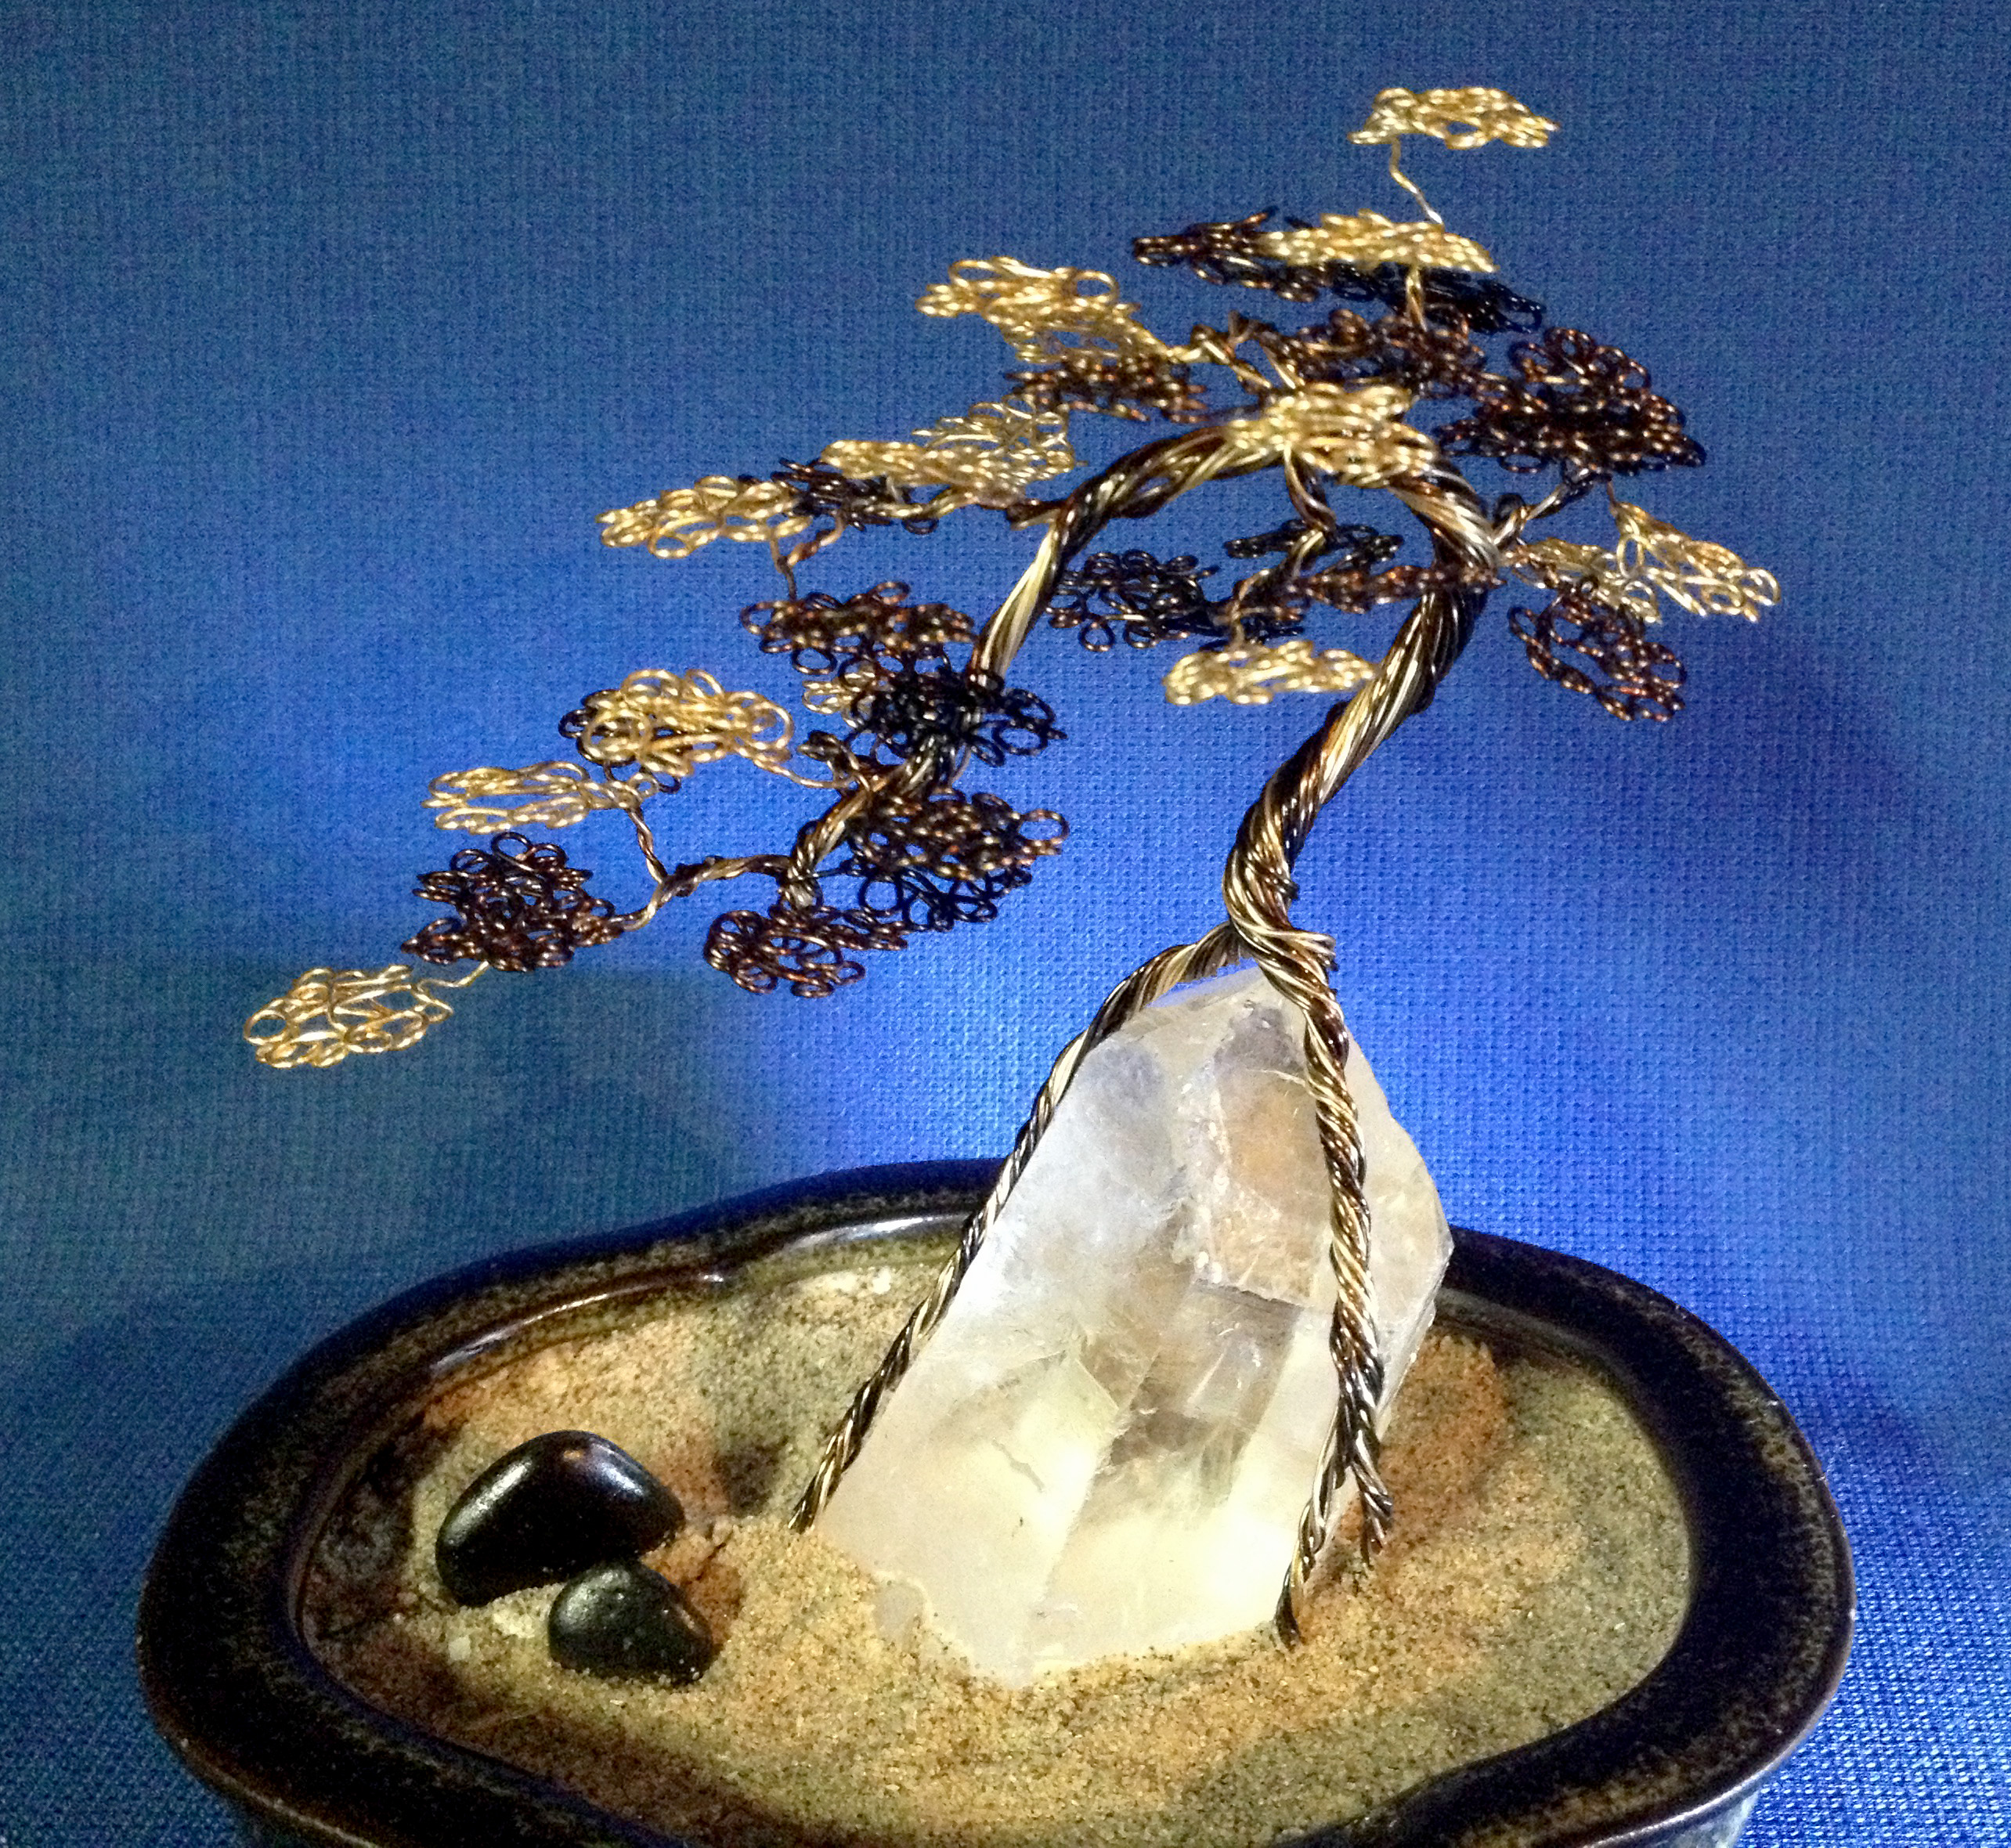 Cascade bonsai on quartz